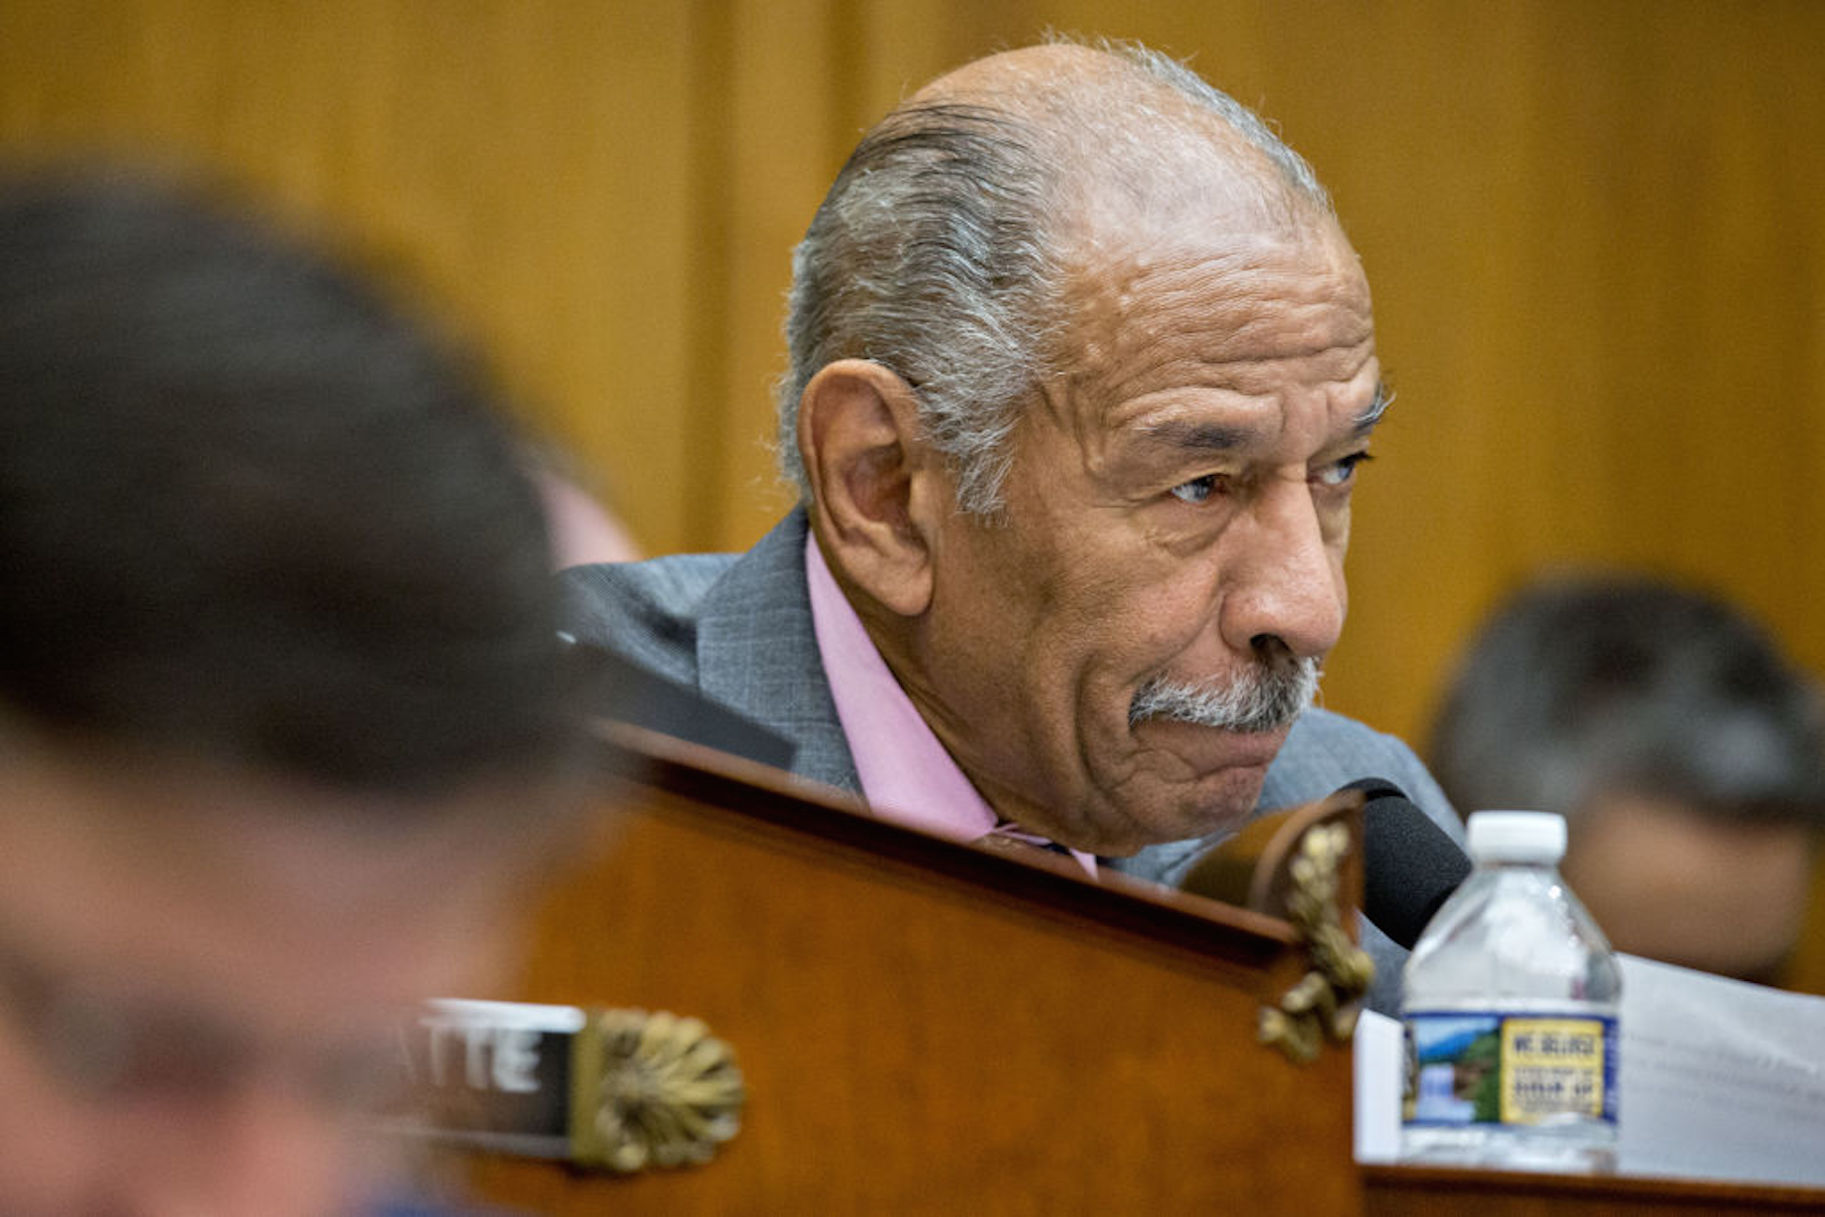 John Conyers Jr Son >> Longest Serving Member Of House John Conyers Will Leave Congress Amid Sexual Harassment ...